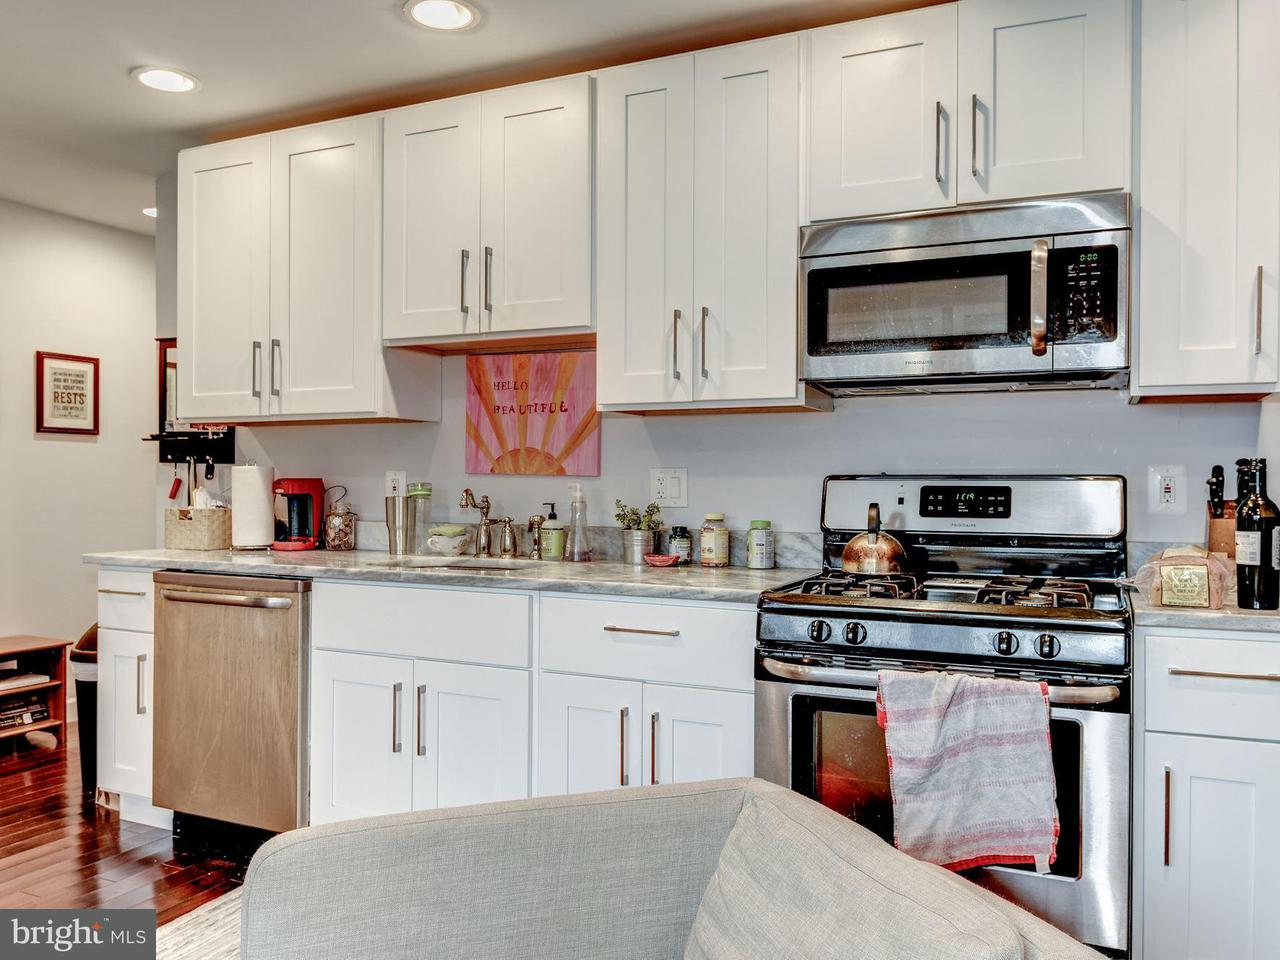 Additional photo for property listing at 725 Hobart Pl Nw 725 Hobart Pl Nw Washington, District Of Columbia 20001 Vereinigte Staaten